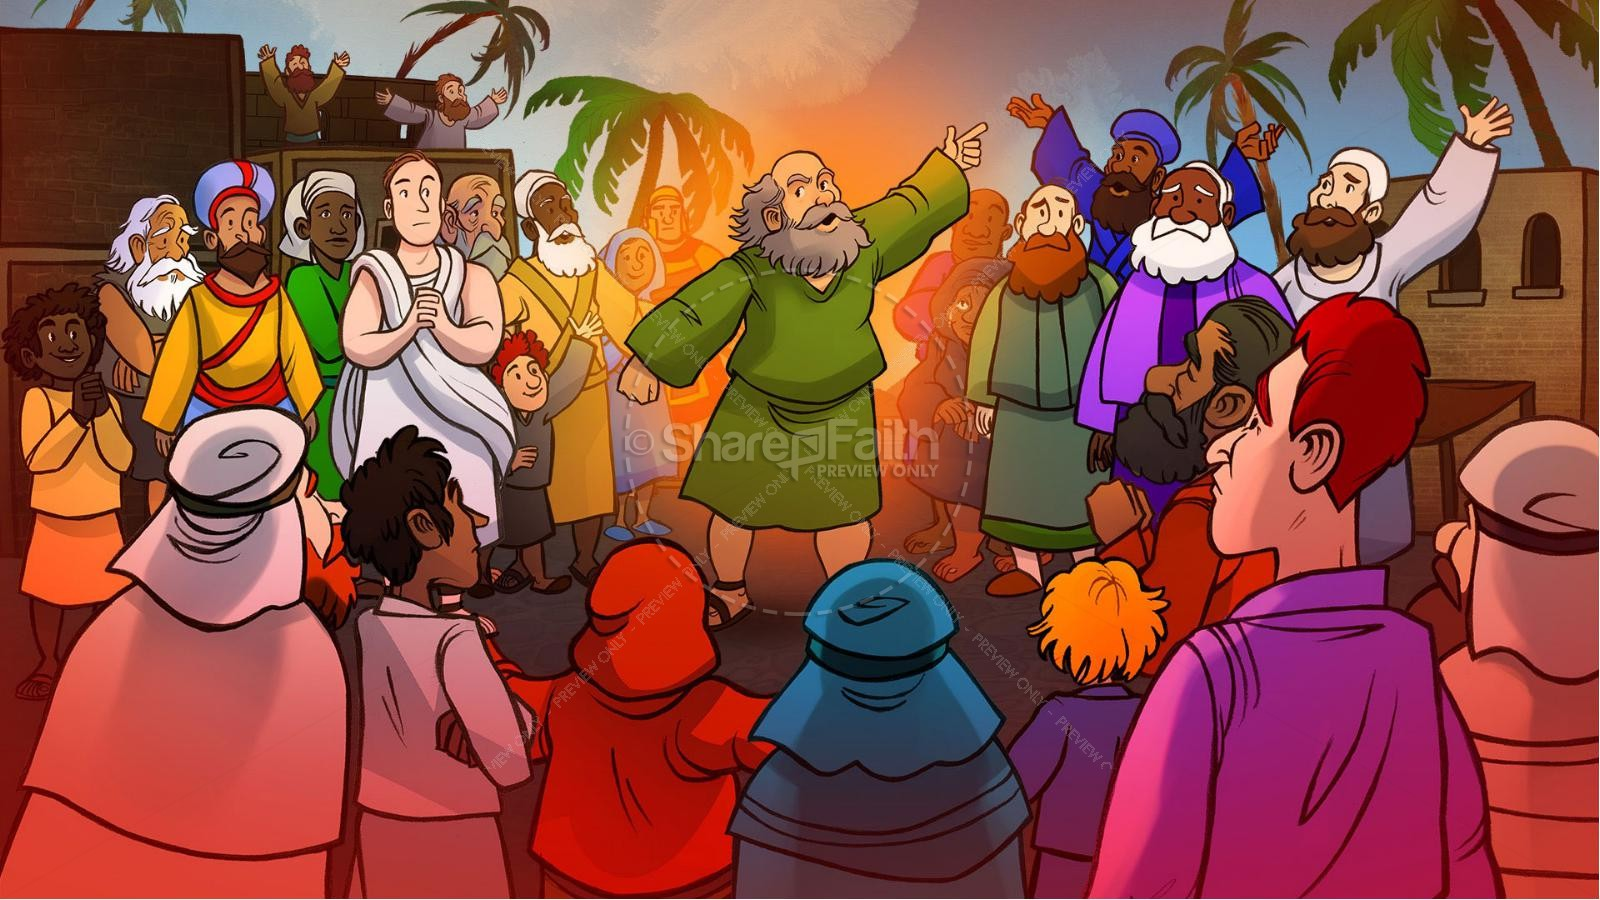 Acts 2 The Holy Spirit Comes Kids Bible Story | slide 6